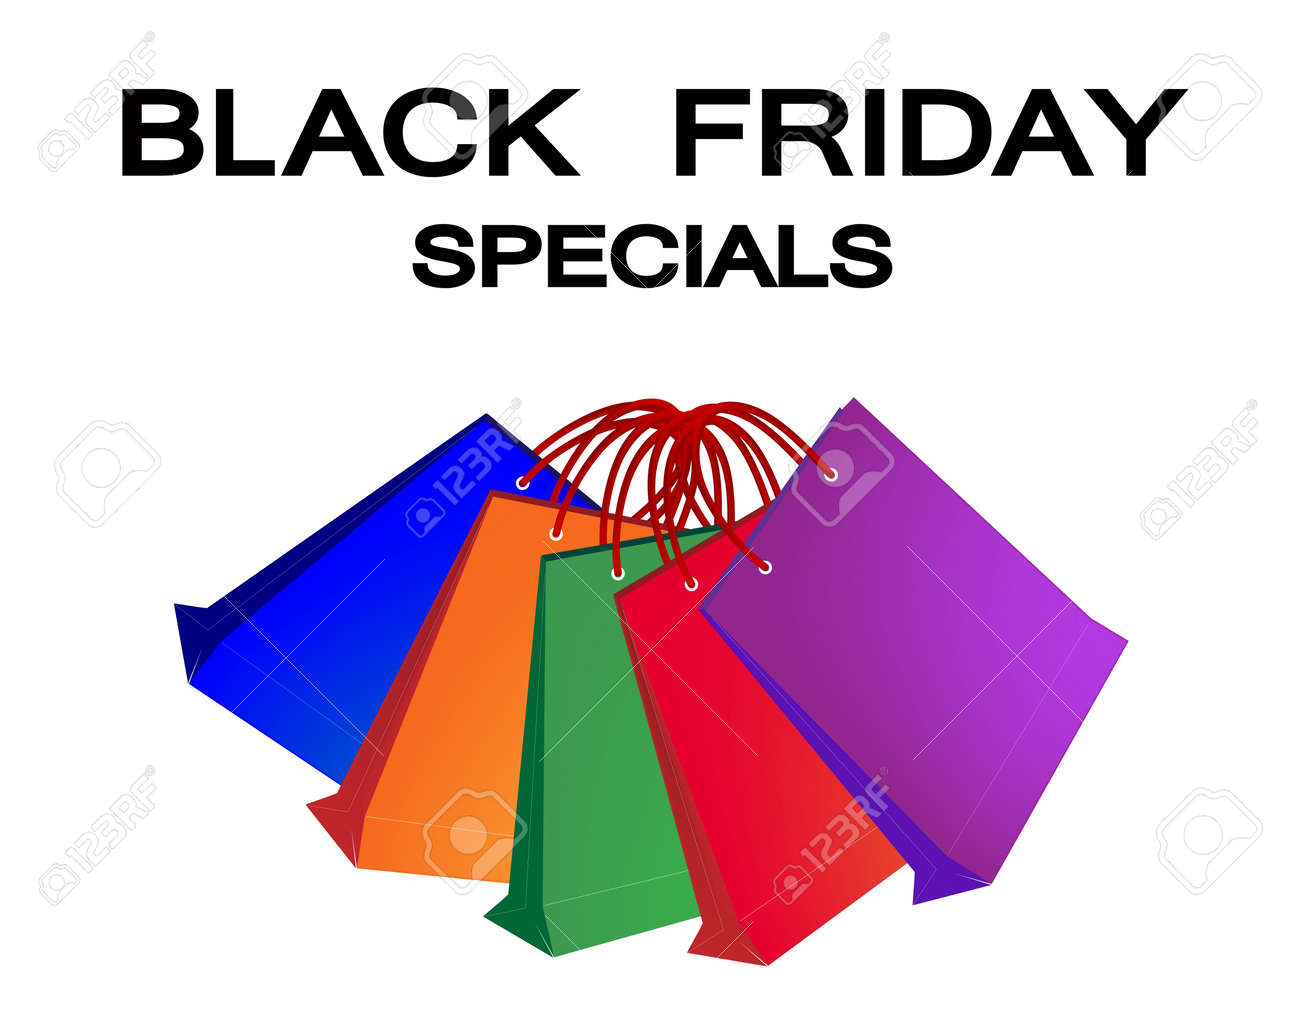 Black Friday Special Label with Paper Shopping Bags, Sign for Start Christmas Shopping Season Stock Vector - 21145354